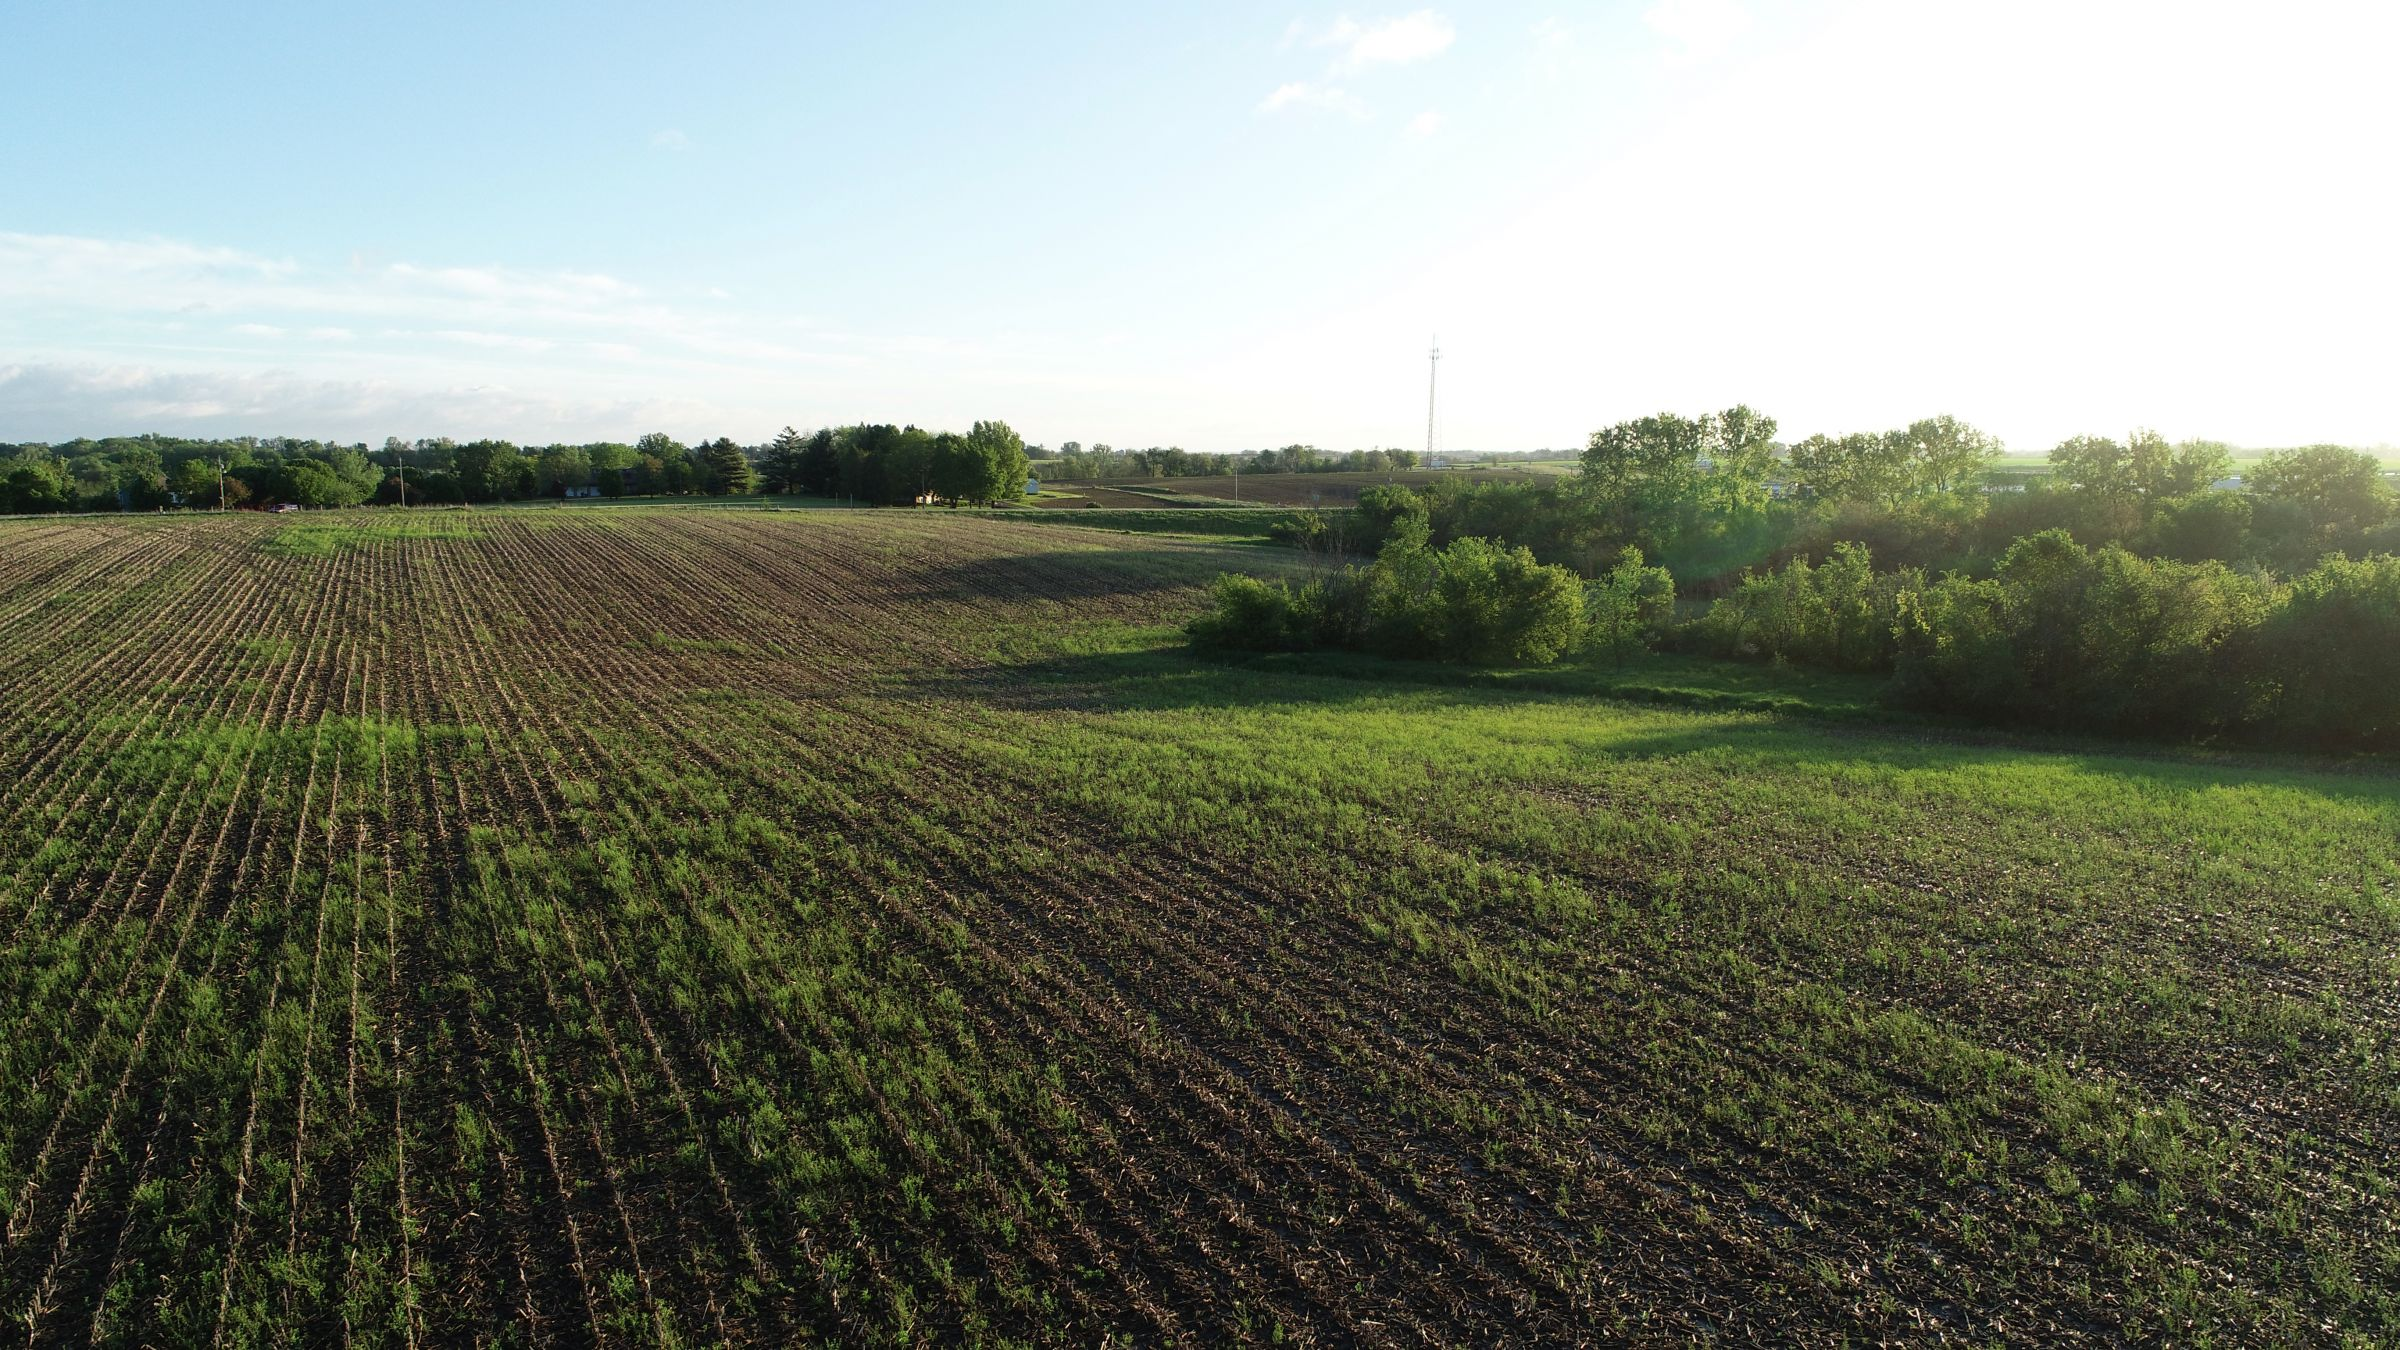 14528-warren-county-development-land-2-2019-05-22-154601.jpg